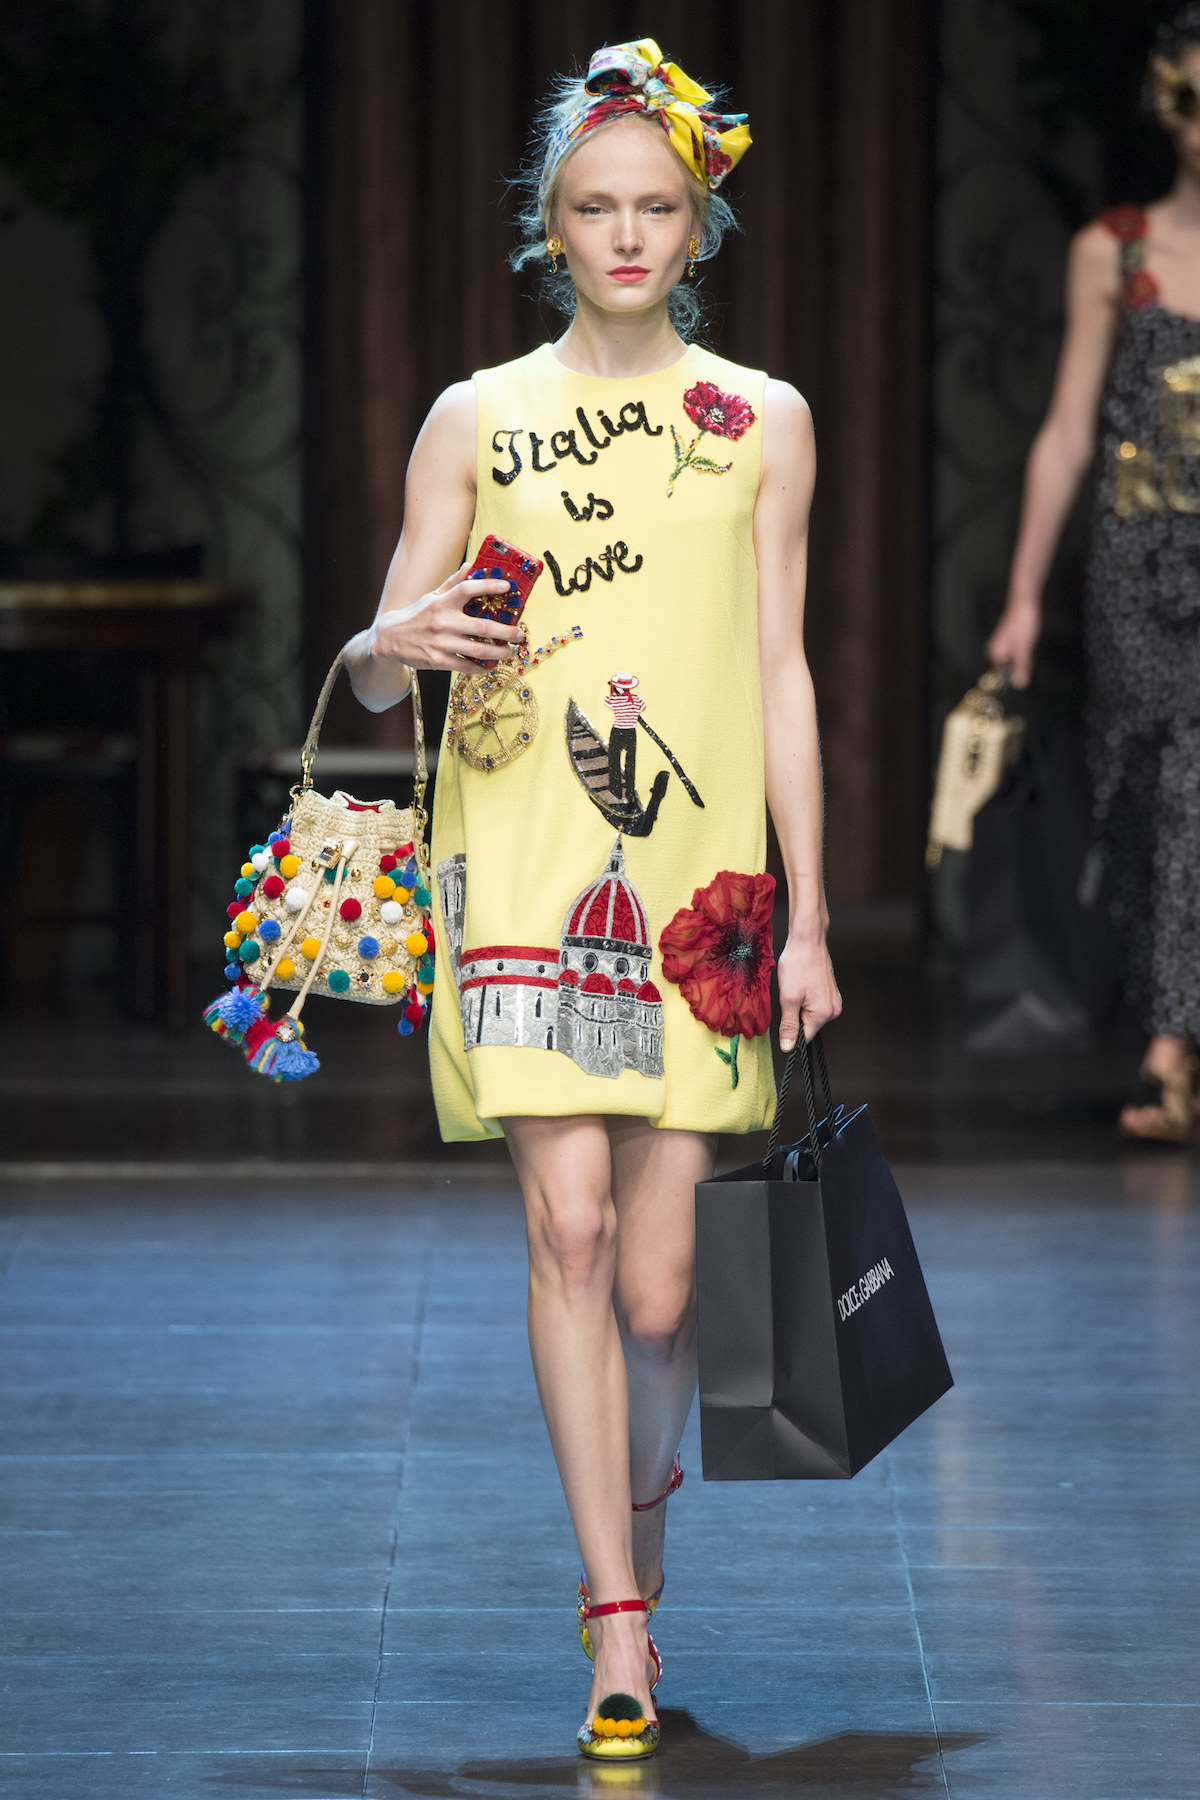 (DOLCE GABBANA S/S 2016) Here's everything you need to know about the previous New York, London, Milan and Paris Fashion Week + the S/S 2016 trends you should look out for this upcoming season. Click to read more!